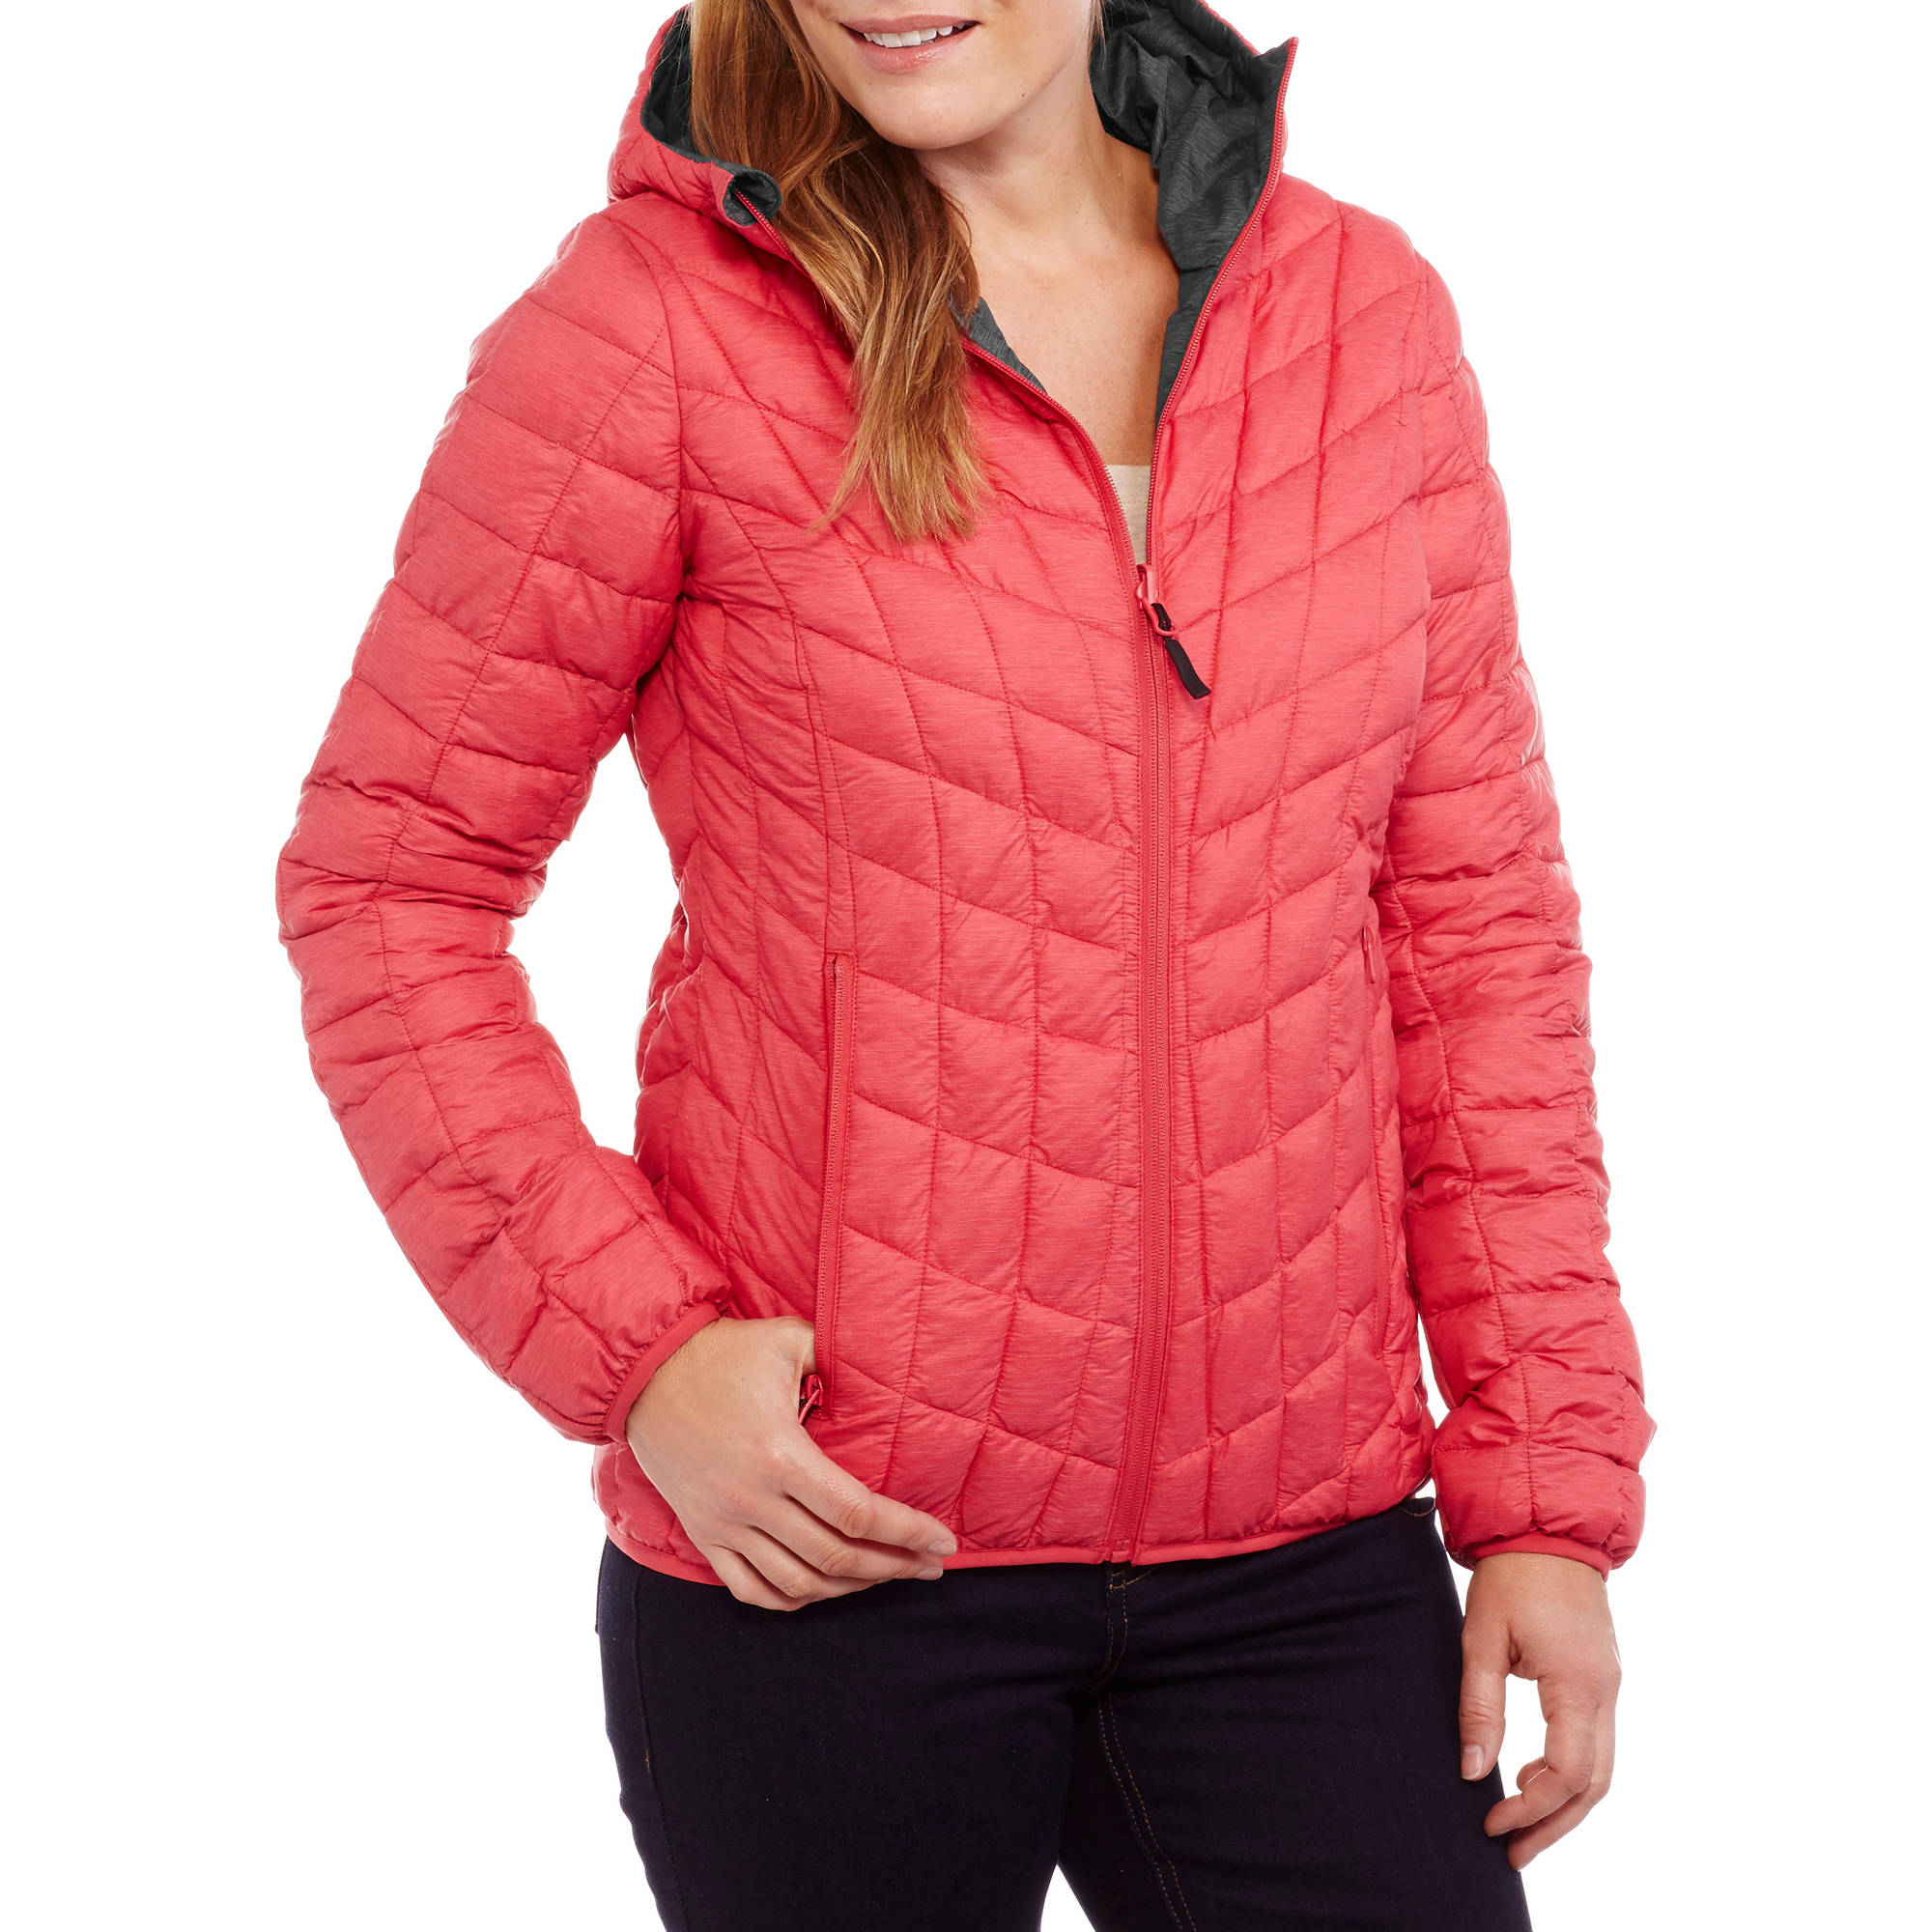 Iceburg Women's Packable Puffer Jacket With Insulated Hood